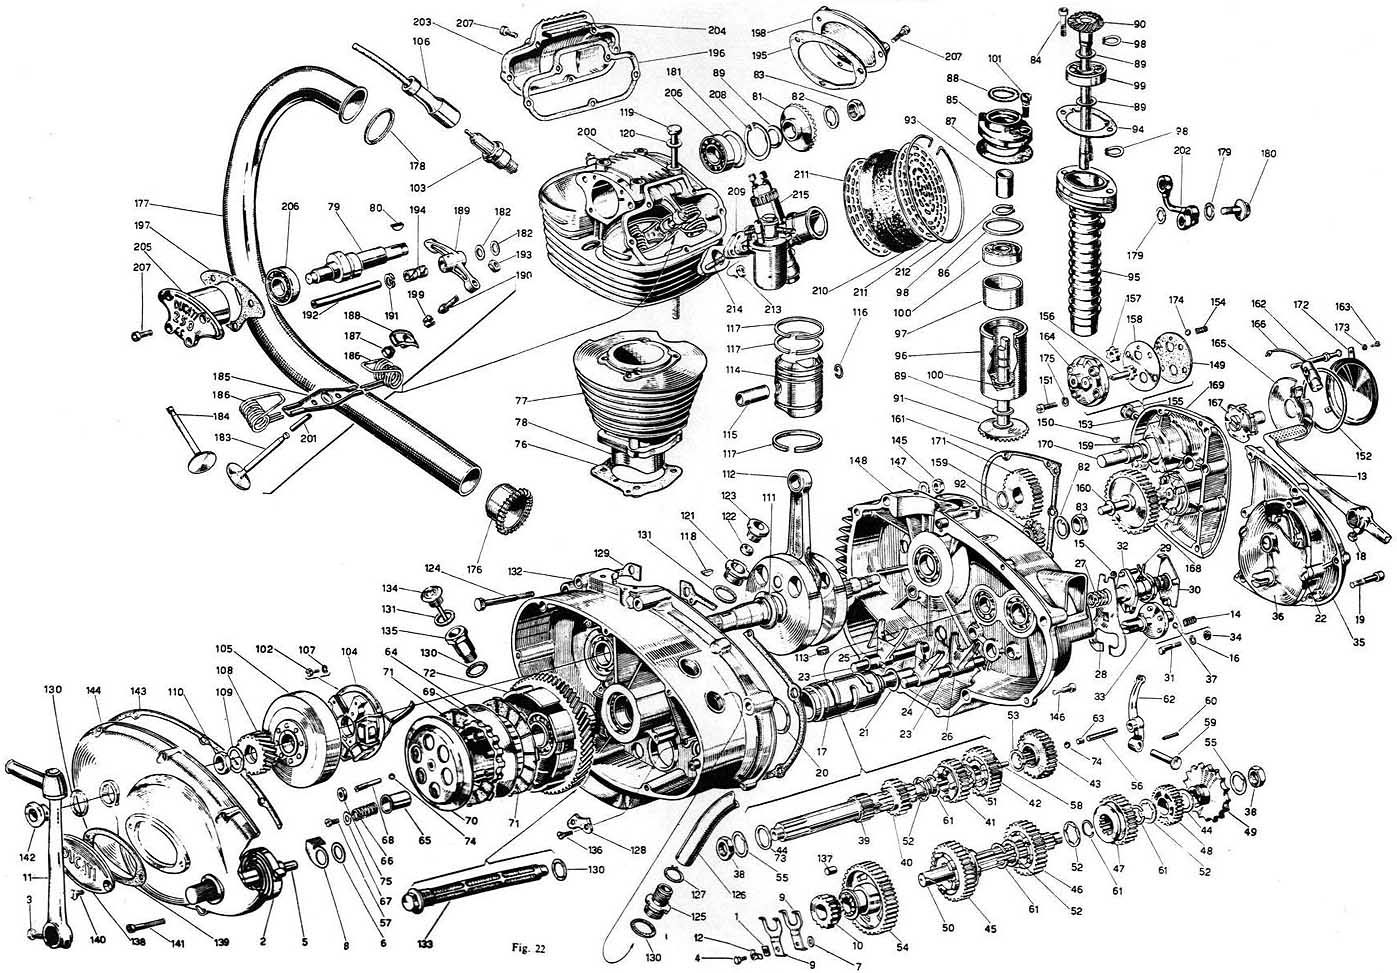 hight resolution of ducati engine schematic cutaway diagrams motorcycle engine ducati engine diagrams